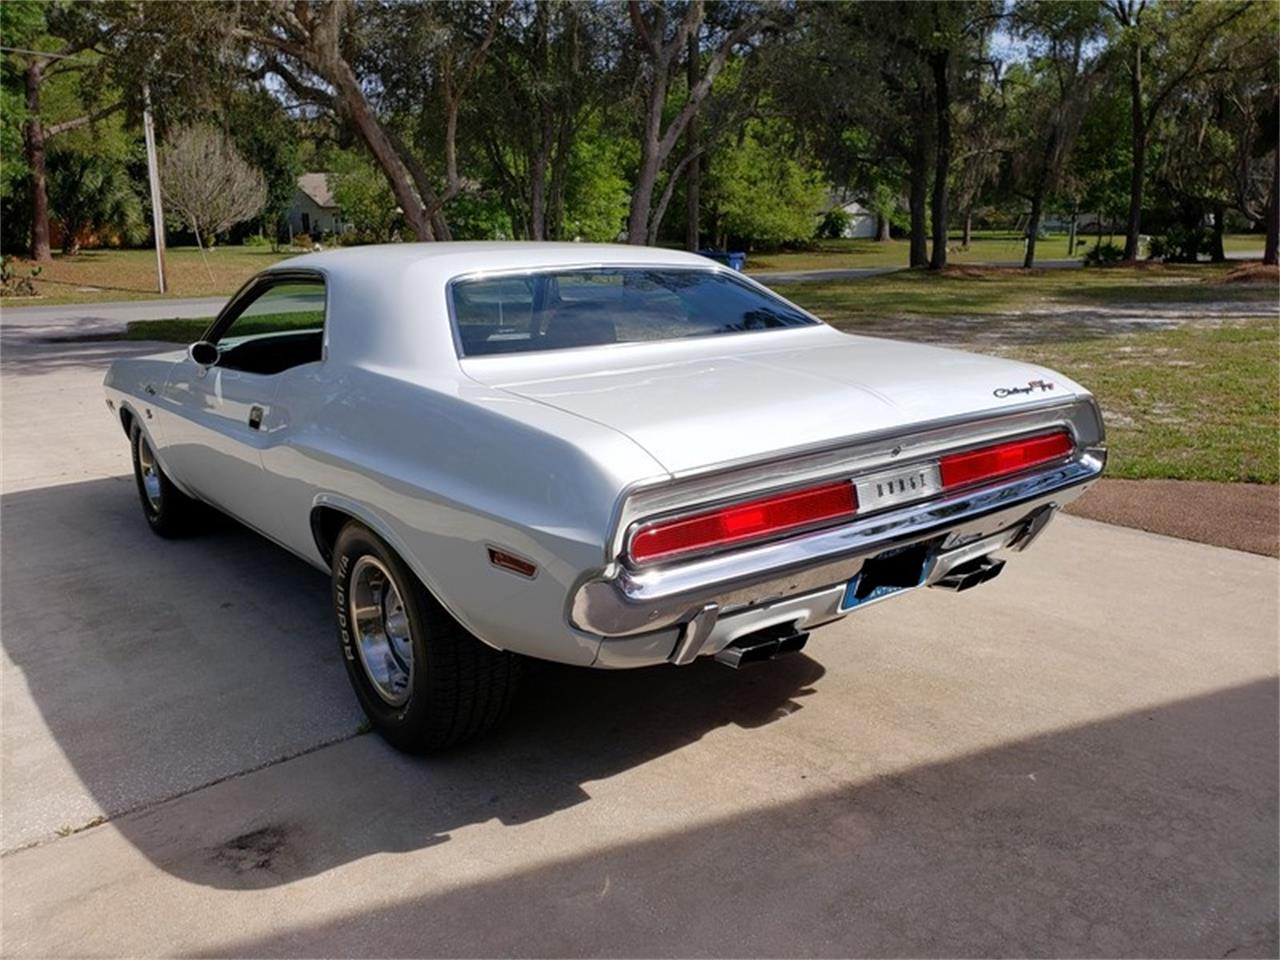 Large Picture of '70 Dodge Challenger R/T - $69,500.00 Offered by a Private Seller - Q72C